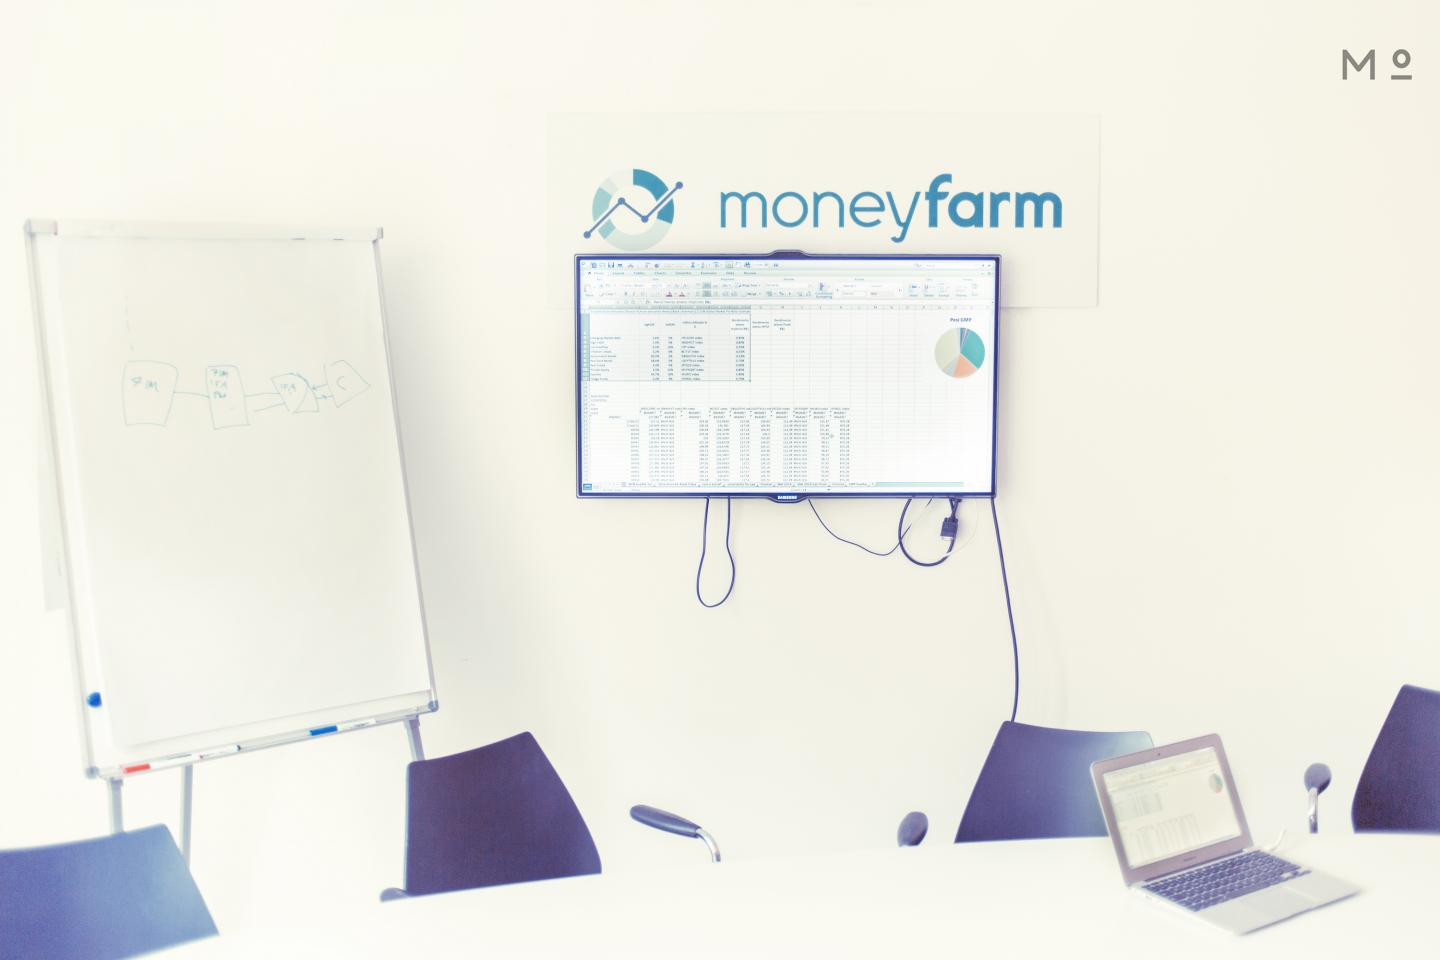 Moneyfarm Milan, Cagliari, London 9